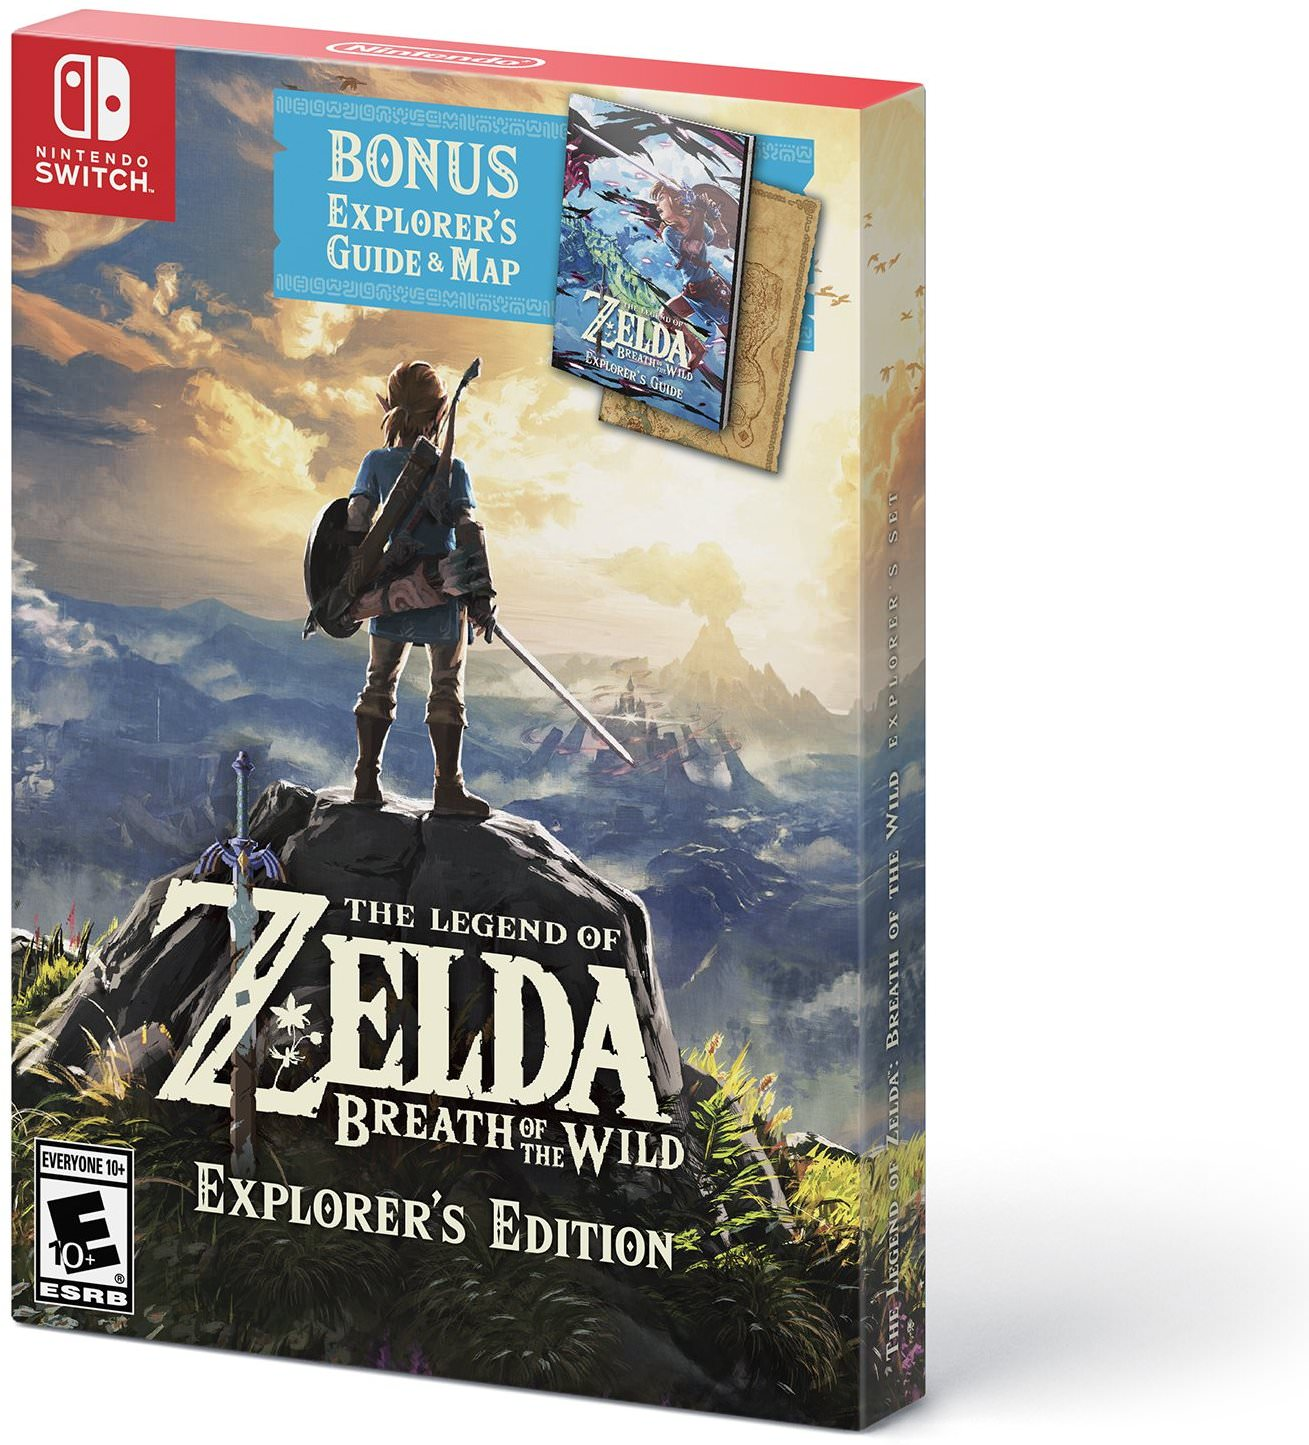 The Legend of Zelda: Breath of the Wild - Explorer's Edition - Nintendo Switch